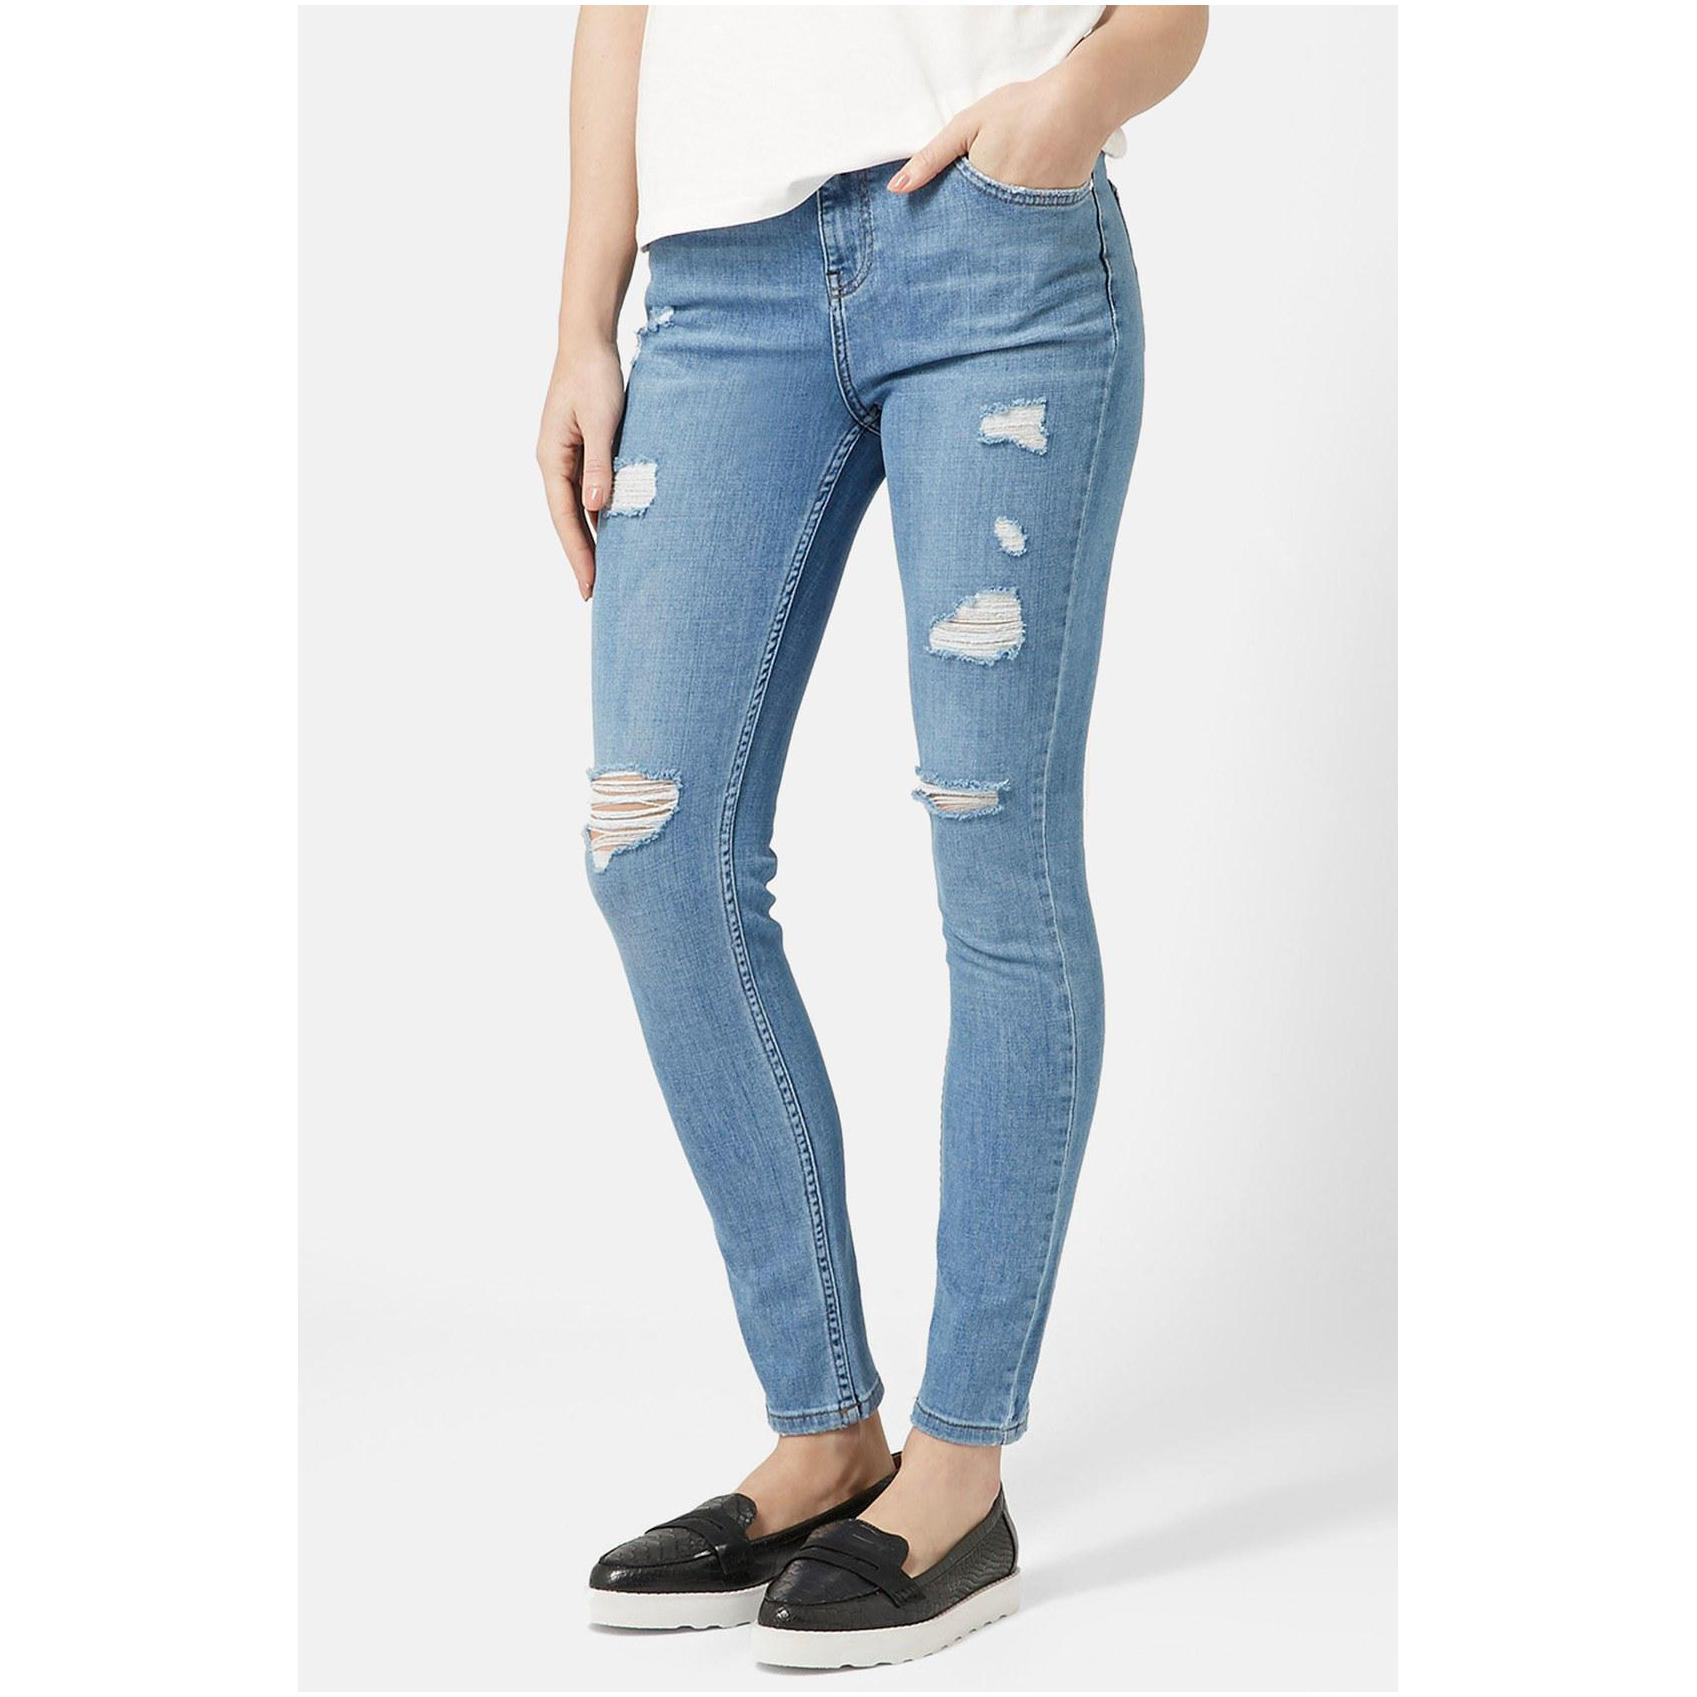 Ripped Jeans for Women – The Sexiest Outfits – Carey Fashion